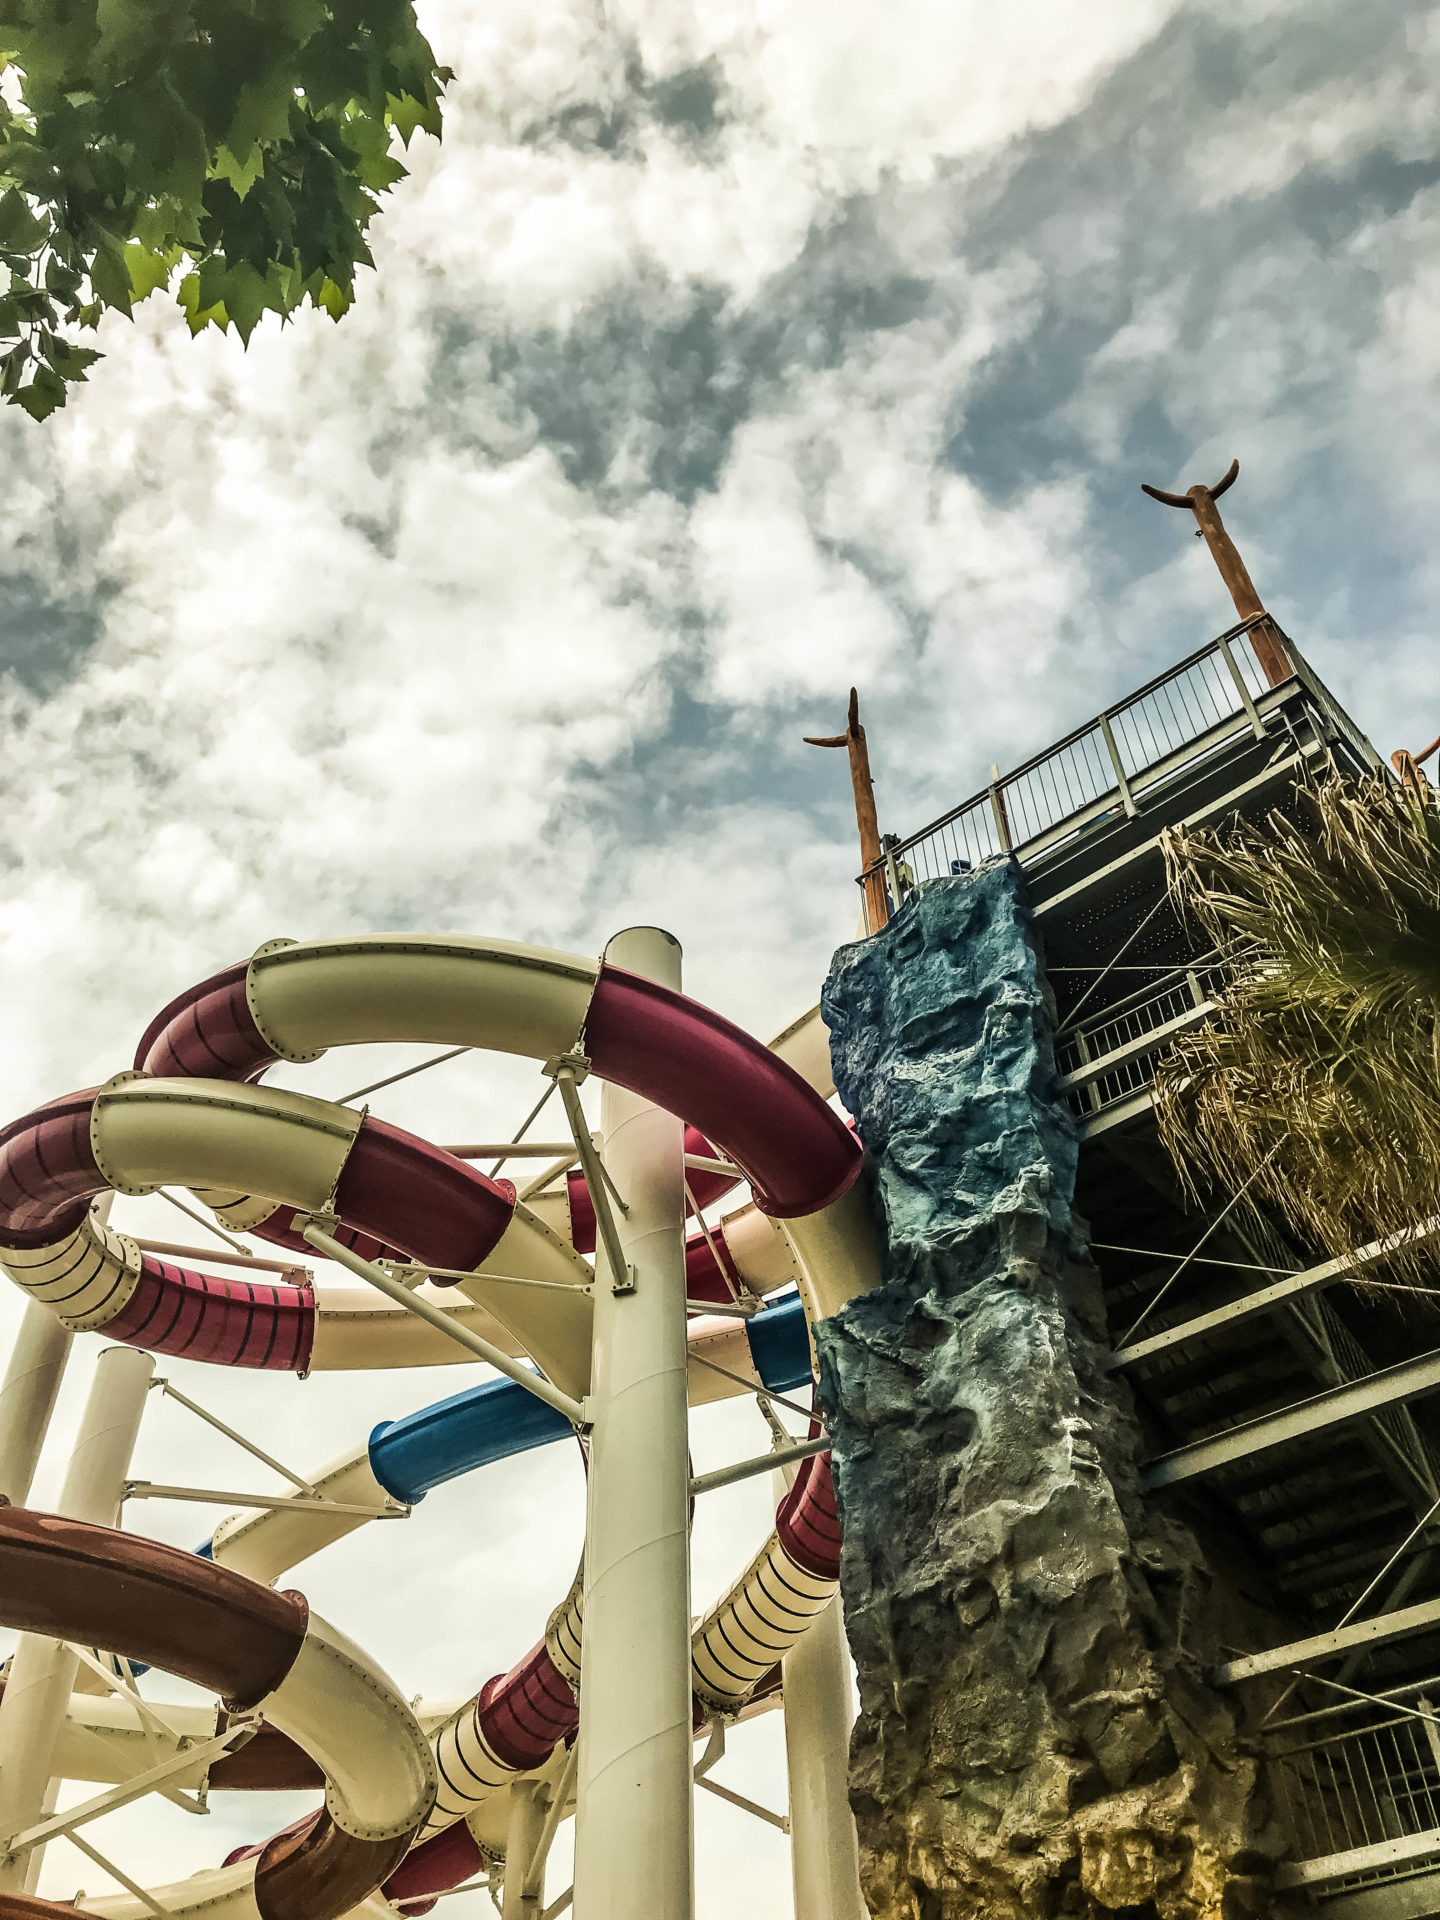 Waterslides at Union Lido